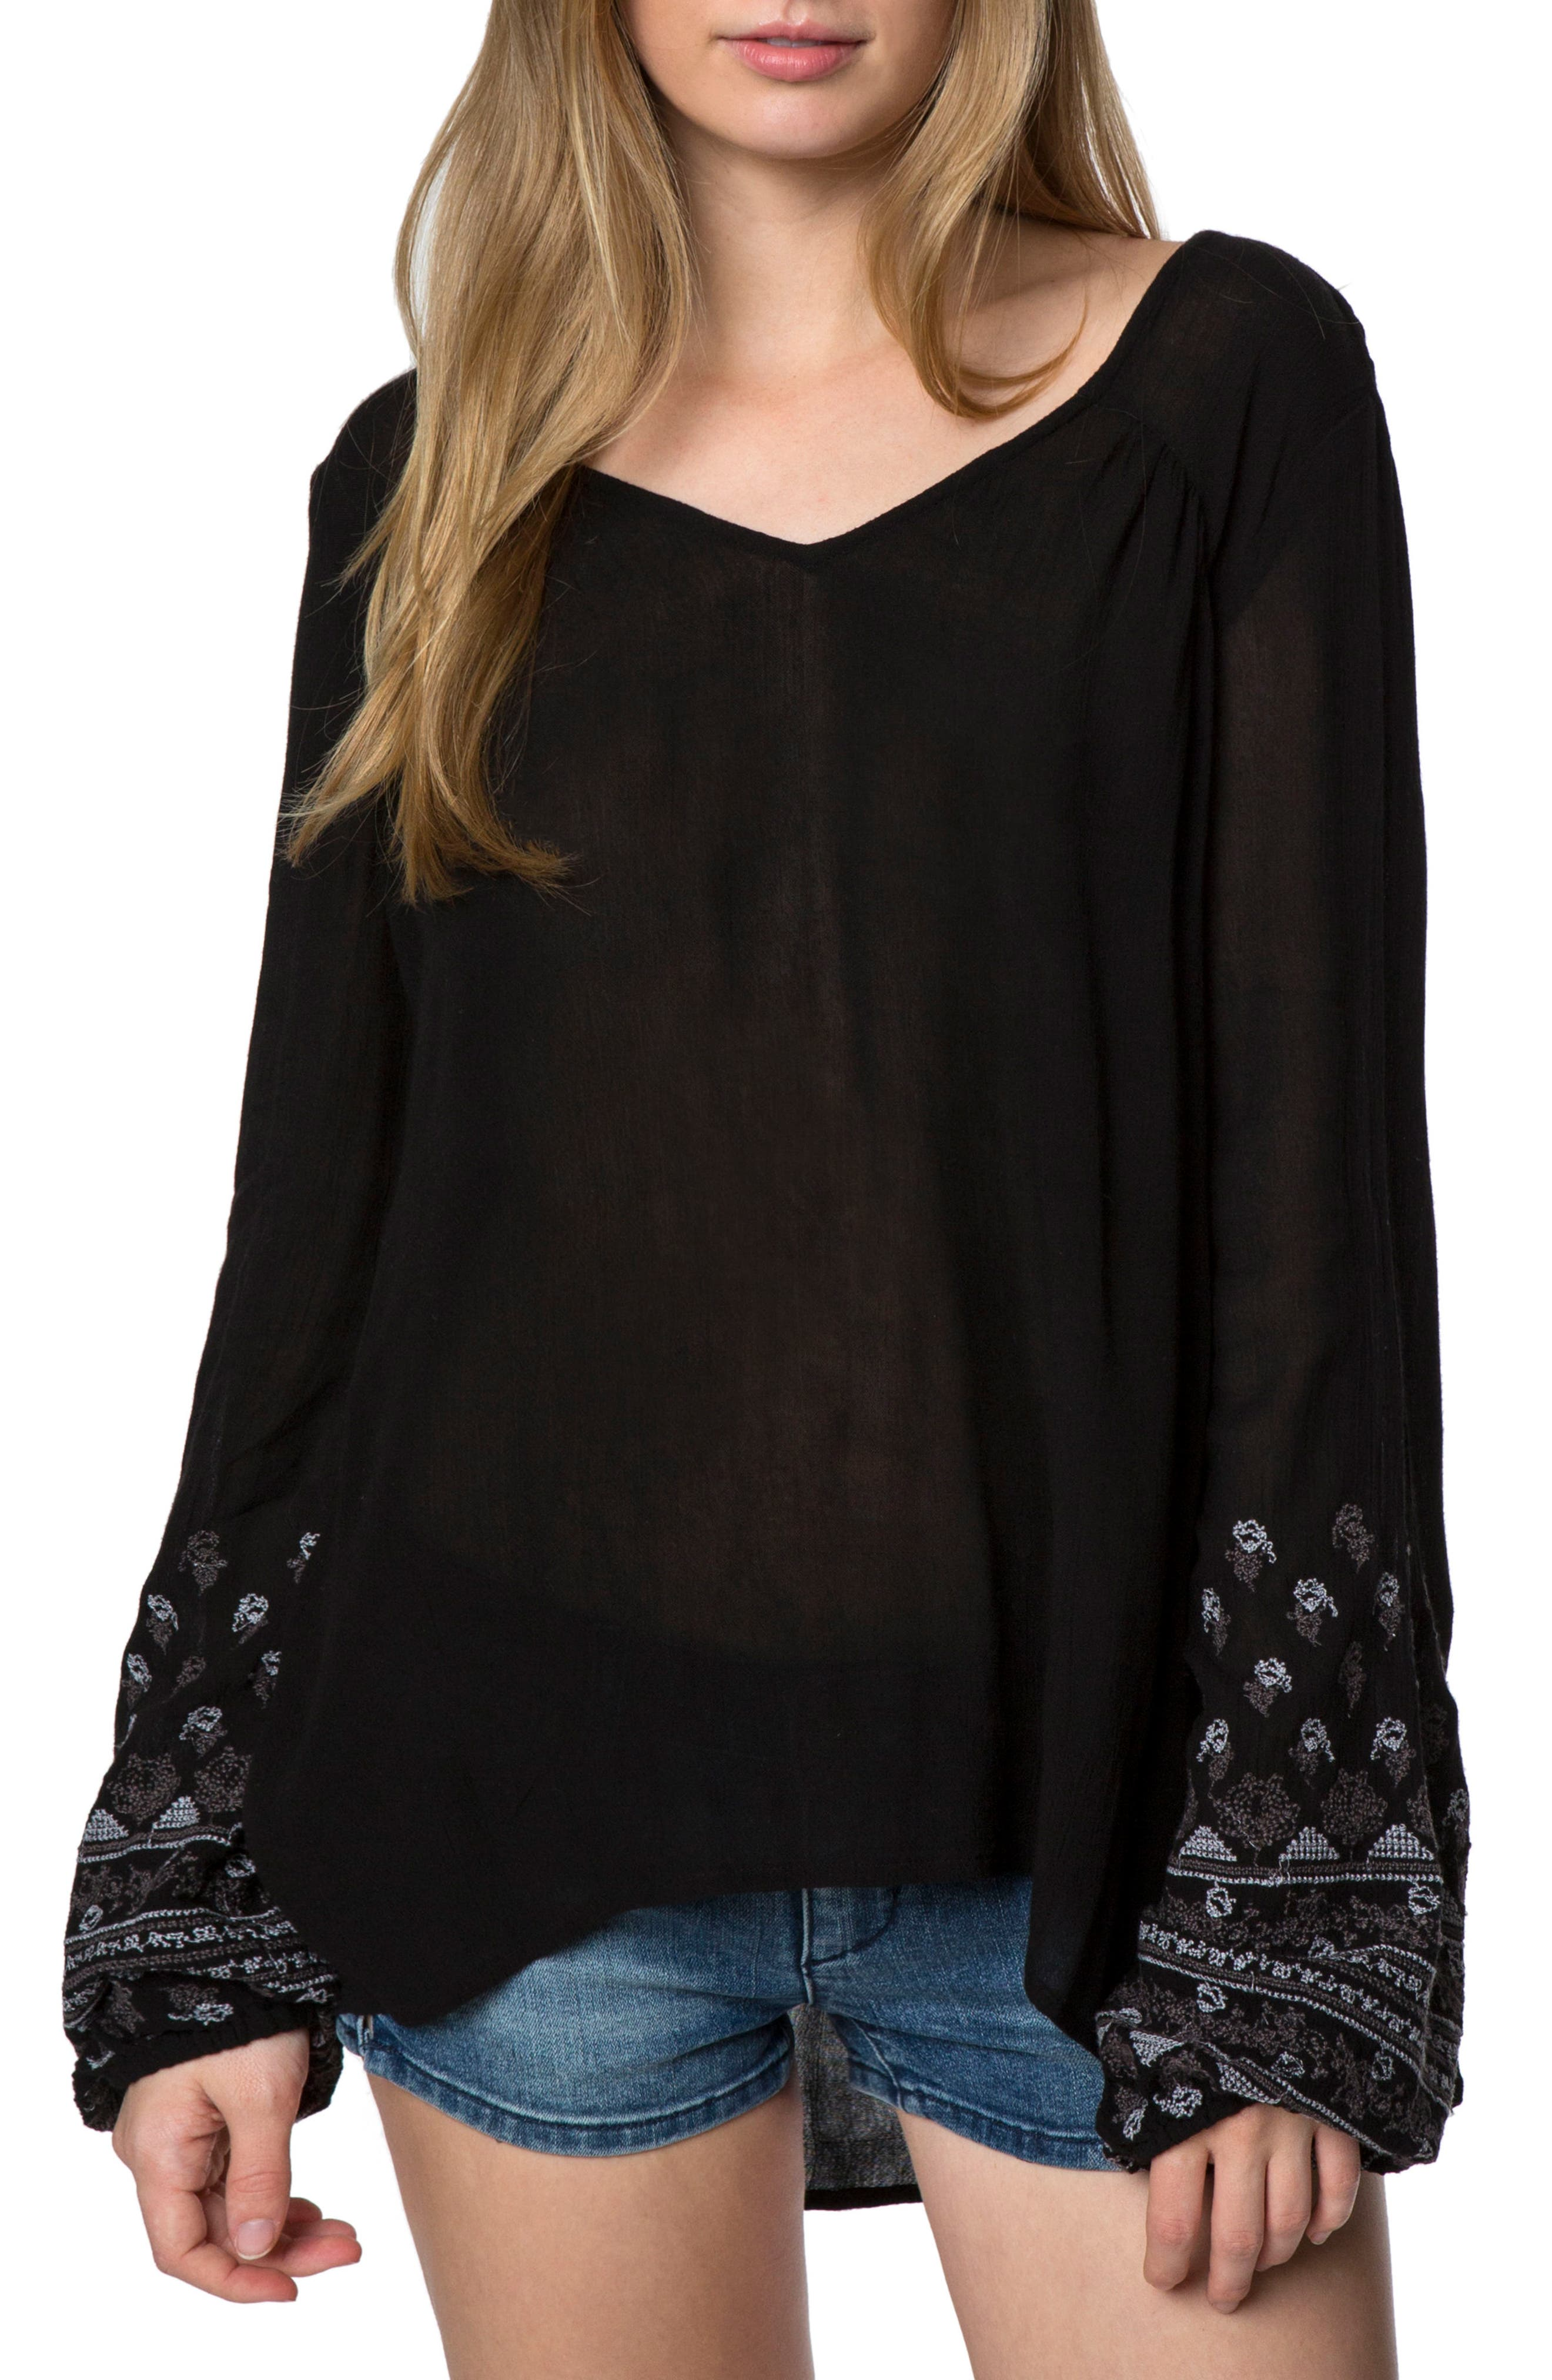 O'Neill Mariana Embroidered Top